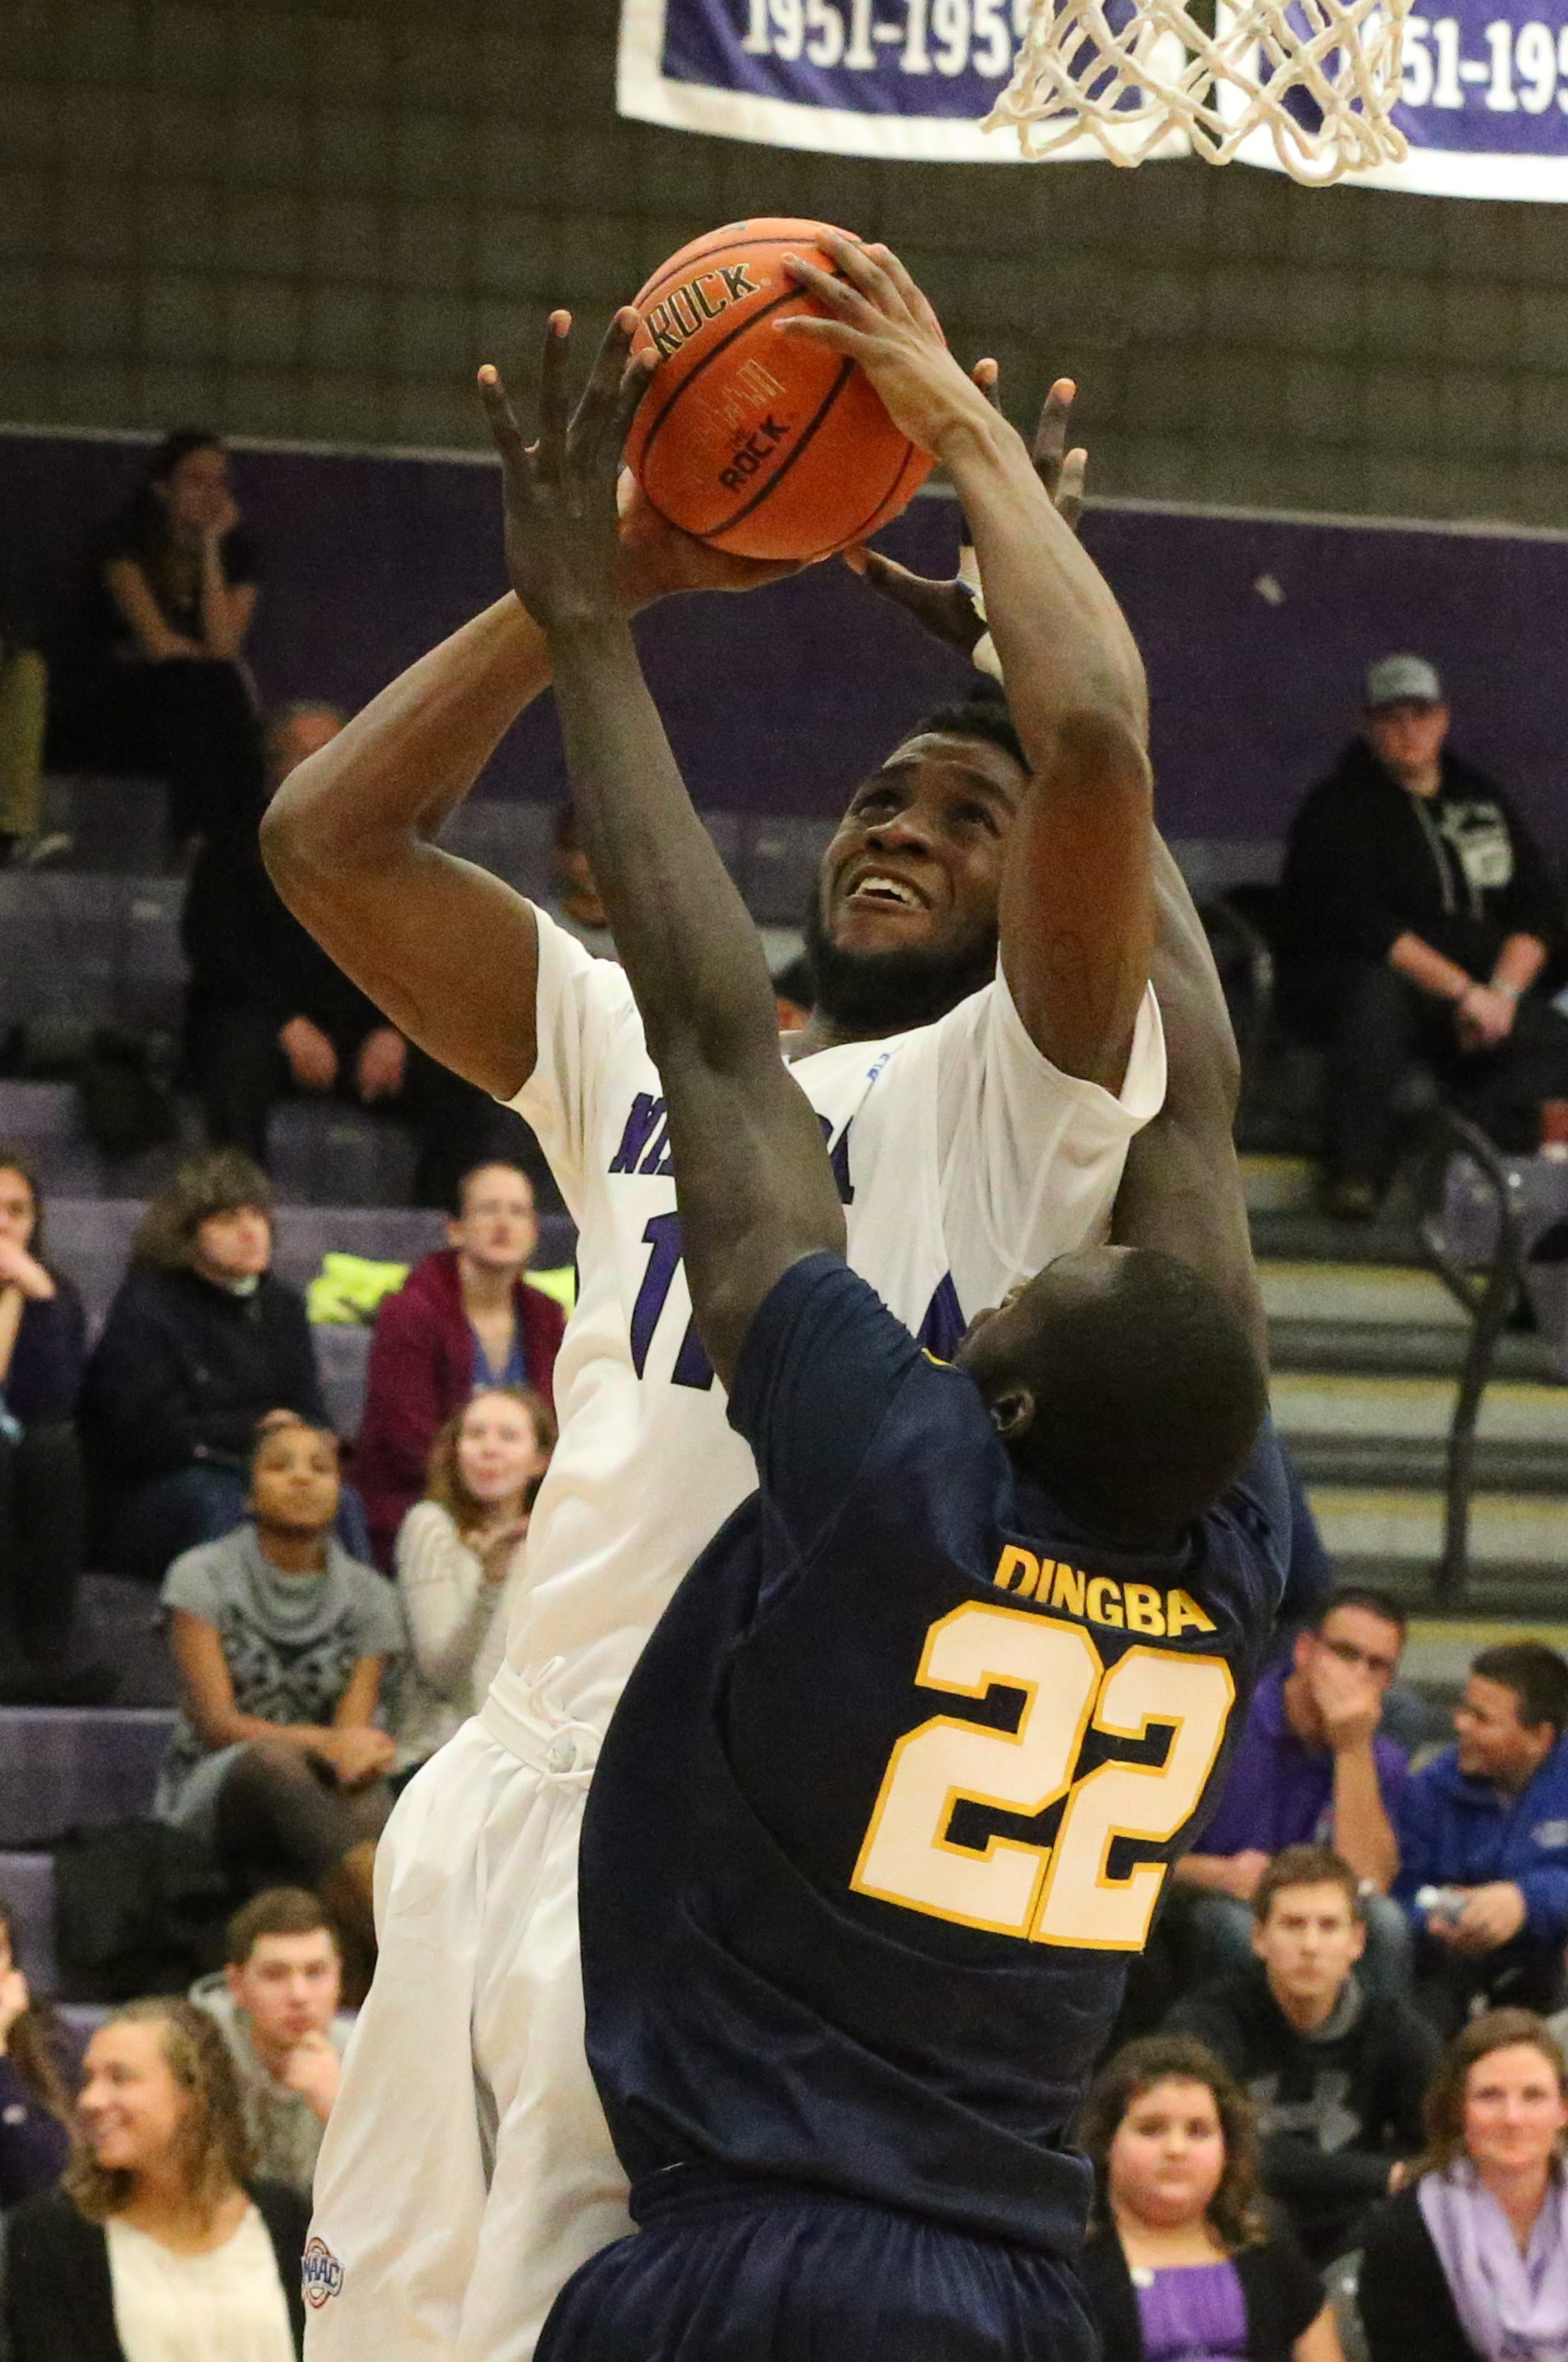 Niagara's Marvin Prochet scores a basket over Quinnipiac's Samuel Dingba in the first half of Friday night's victory at the Gallagher Center.